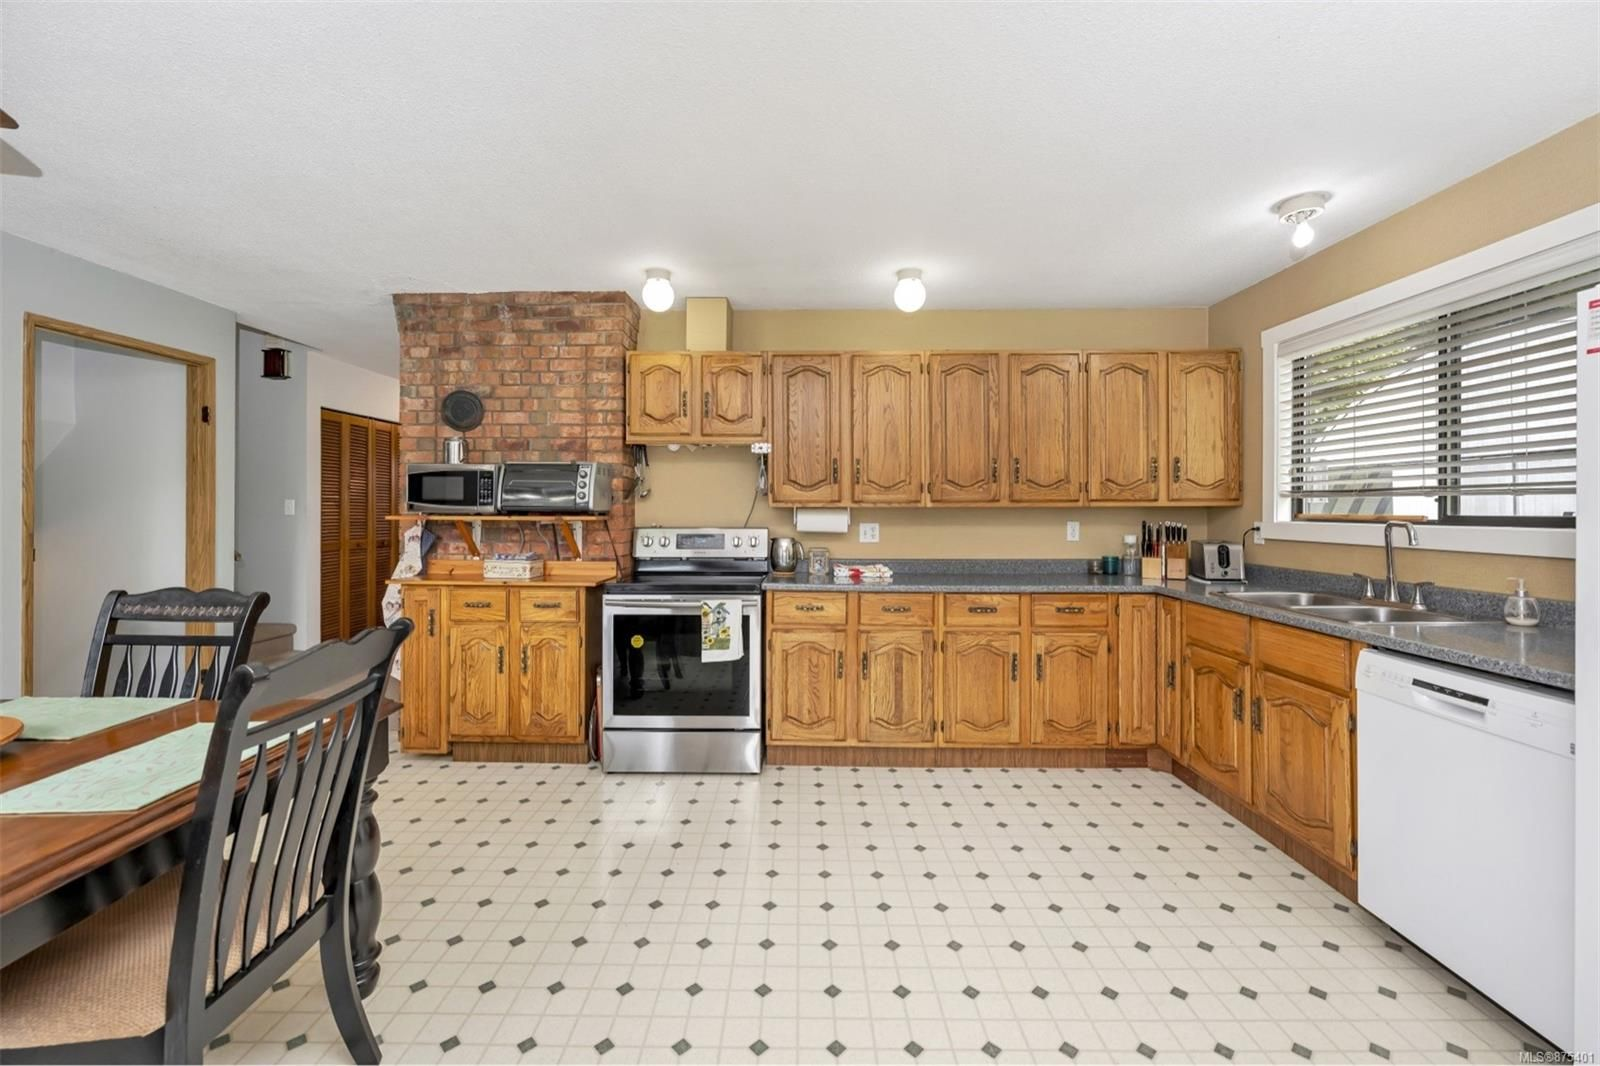 Photo 29: Photos: 6886 Lakes Rd in : Du East Duncan House for sale (Duncan)  : MLS®# 875401